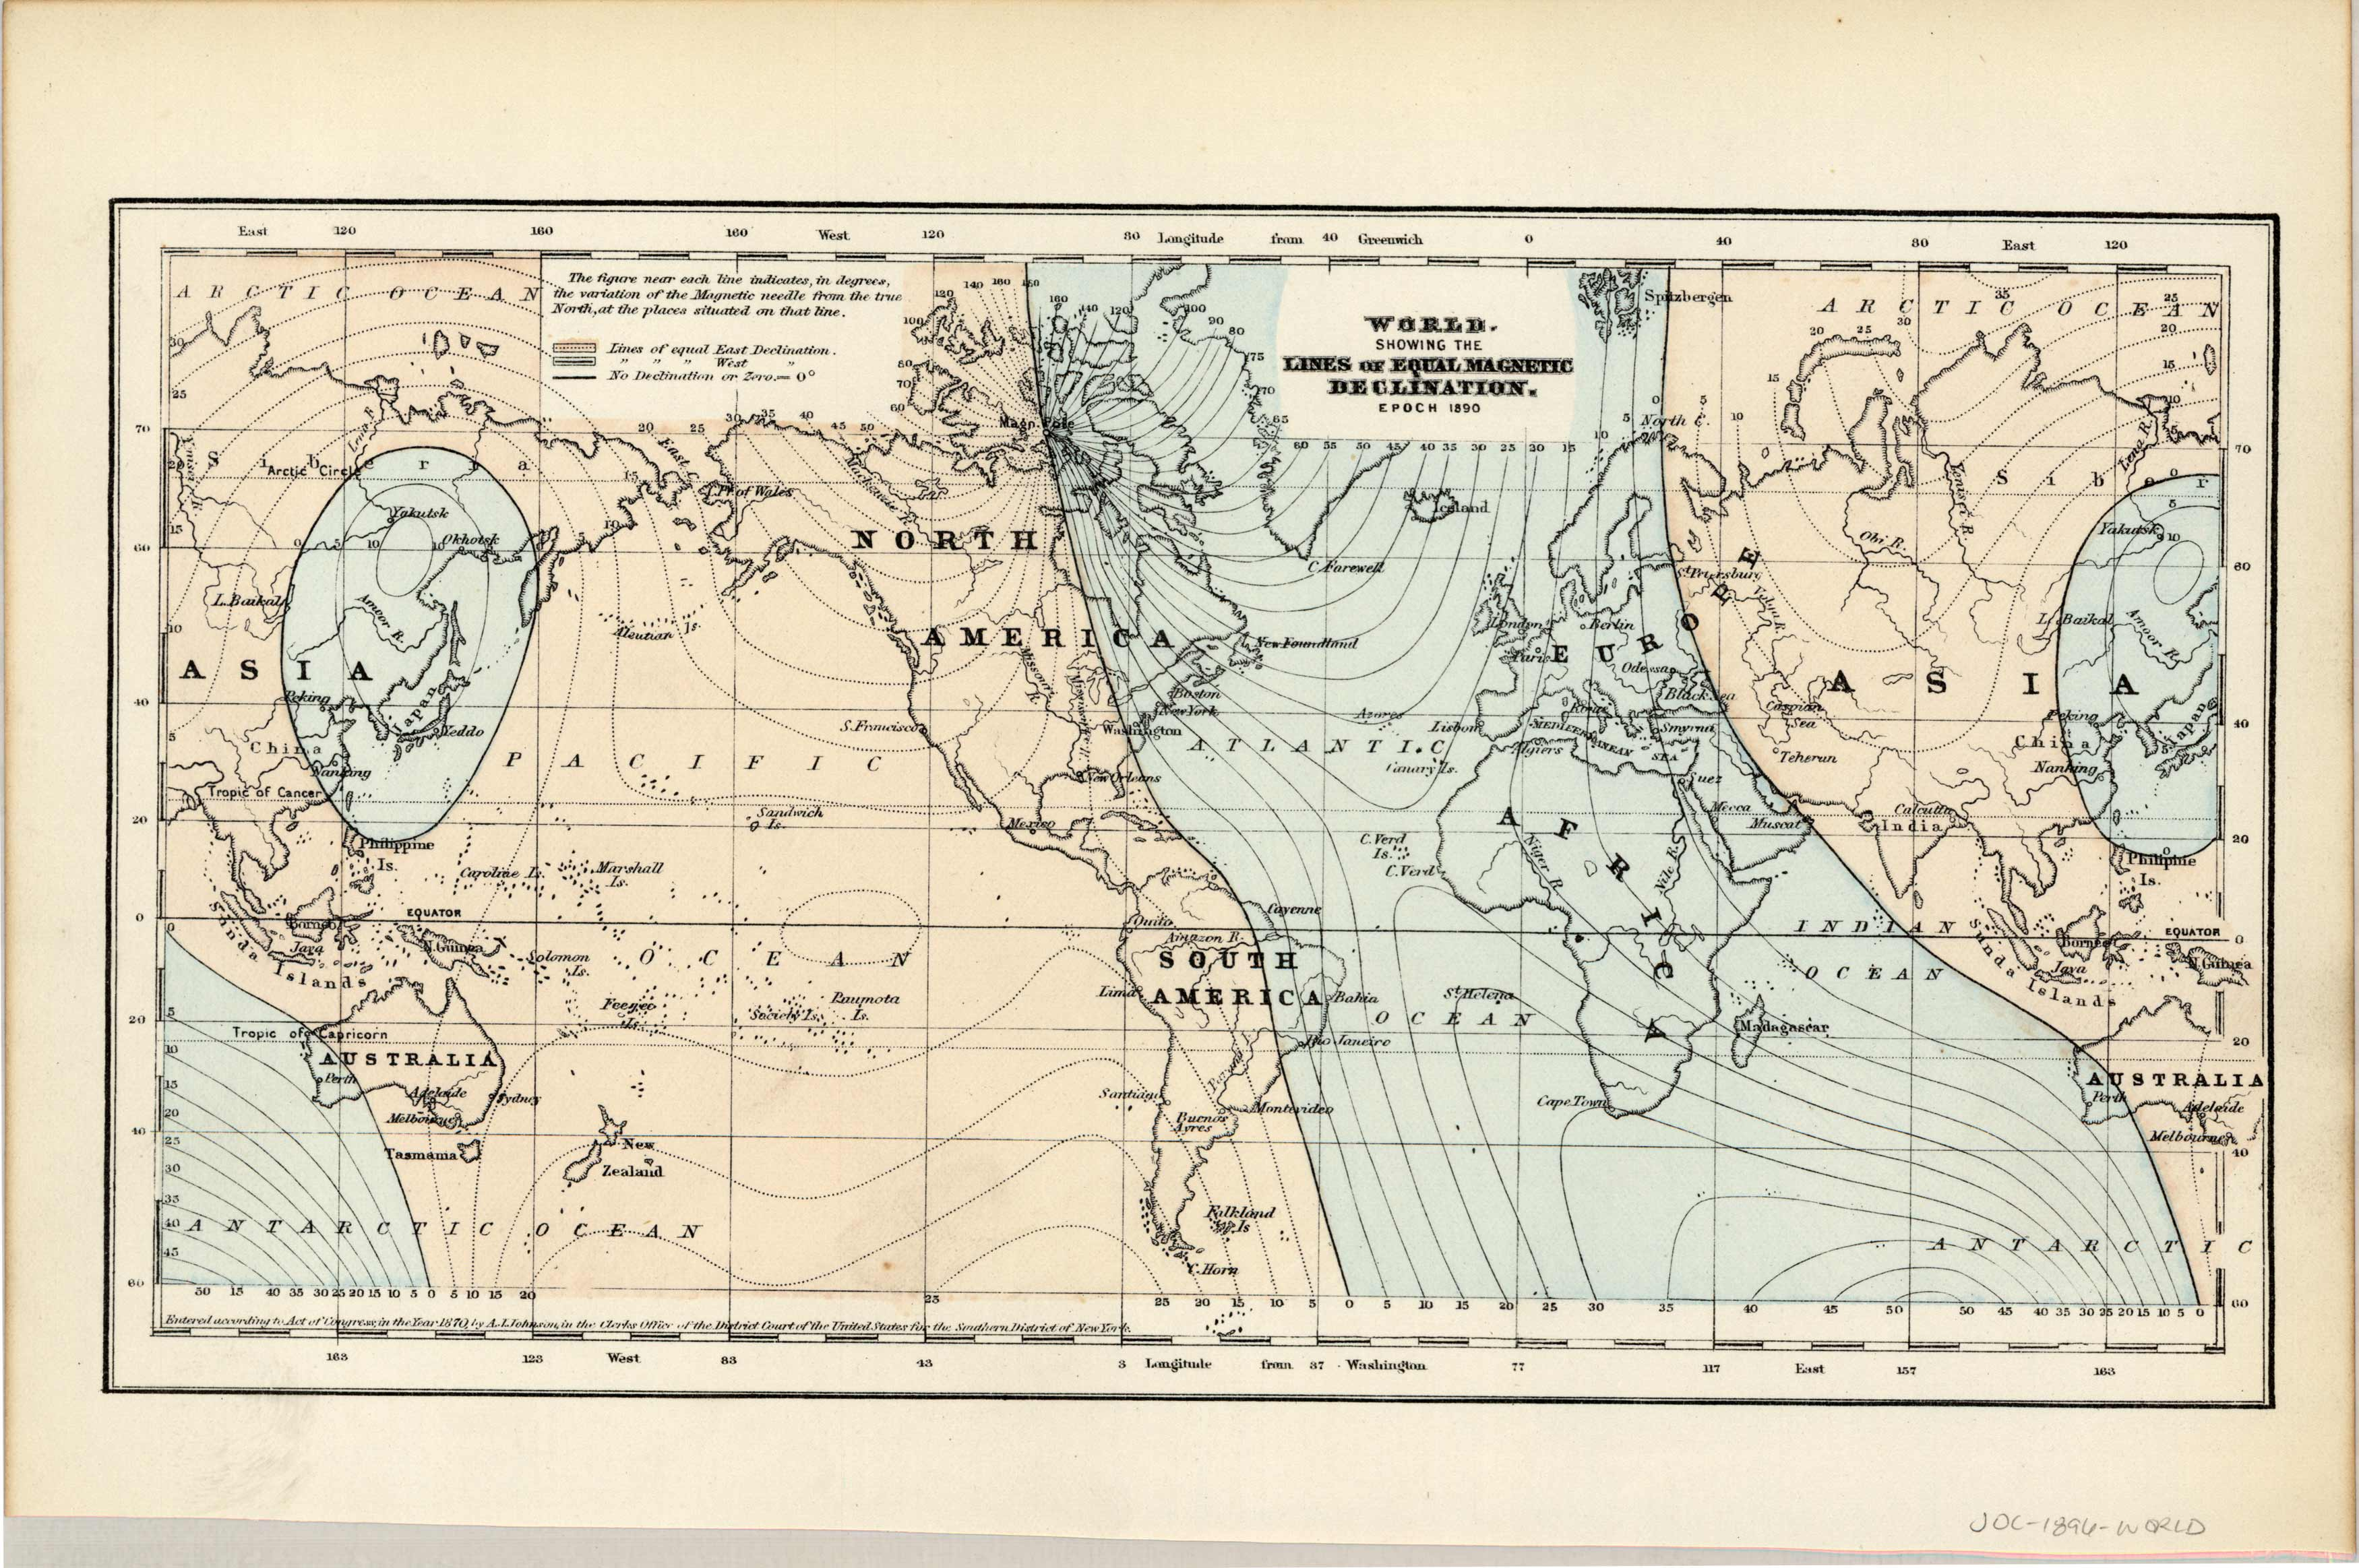 World Showing the Lines of Equal Magnetic Declination